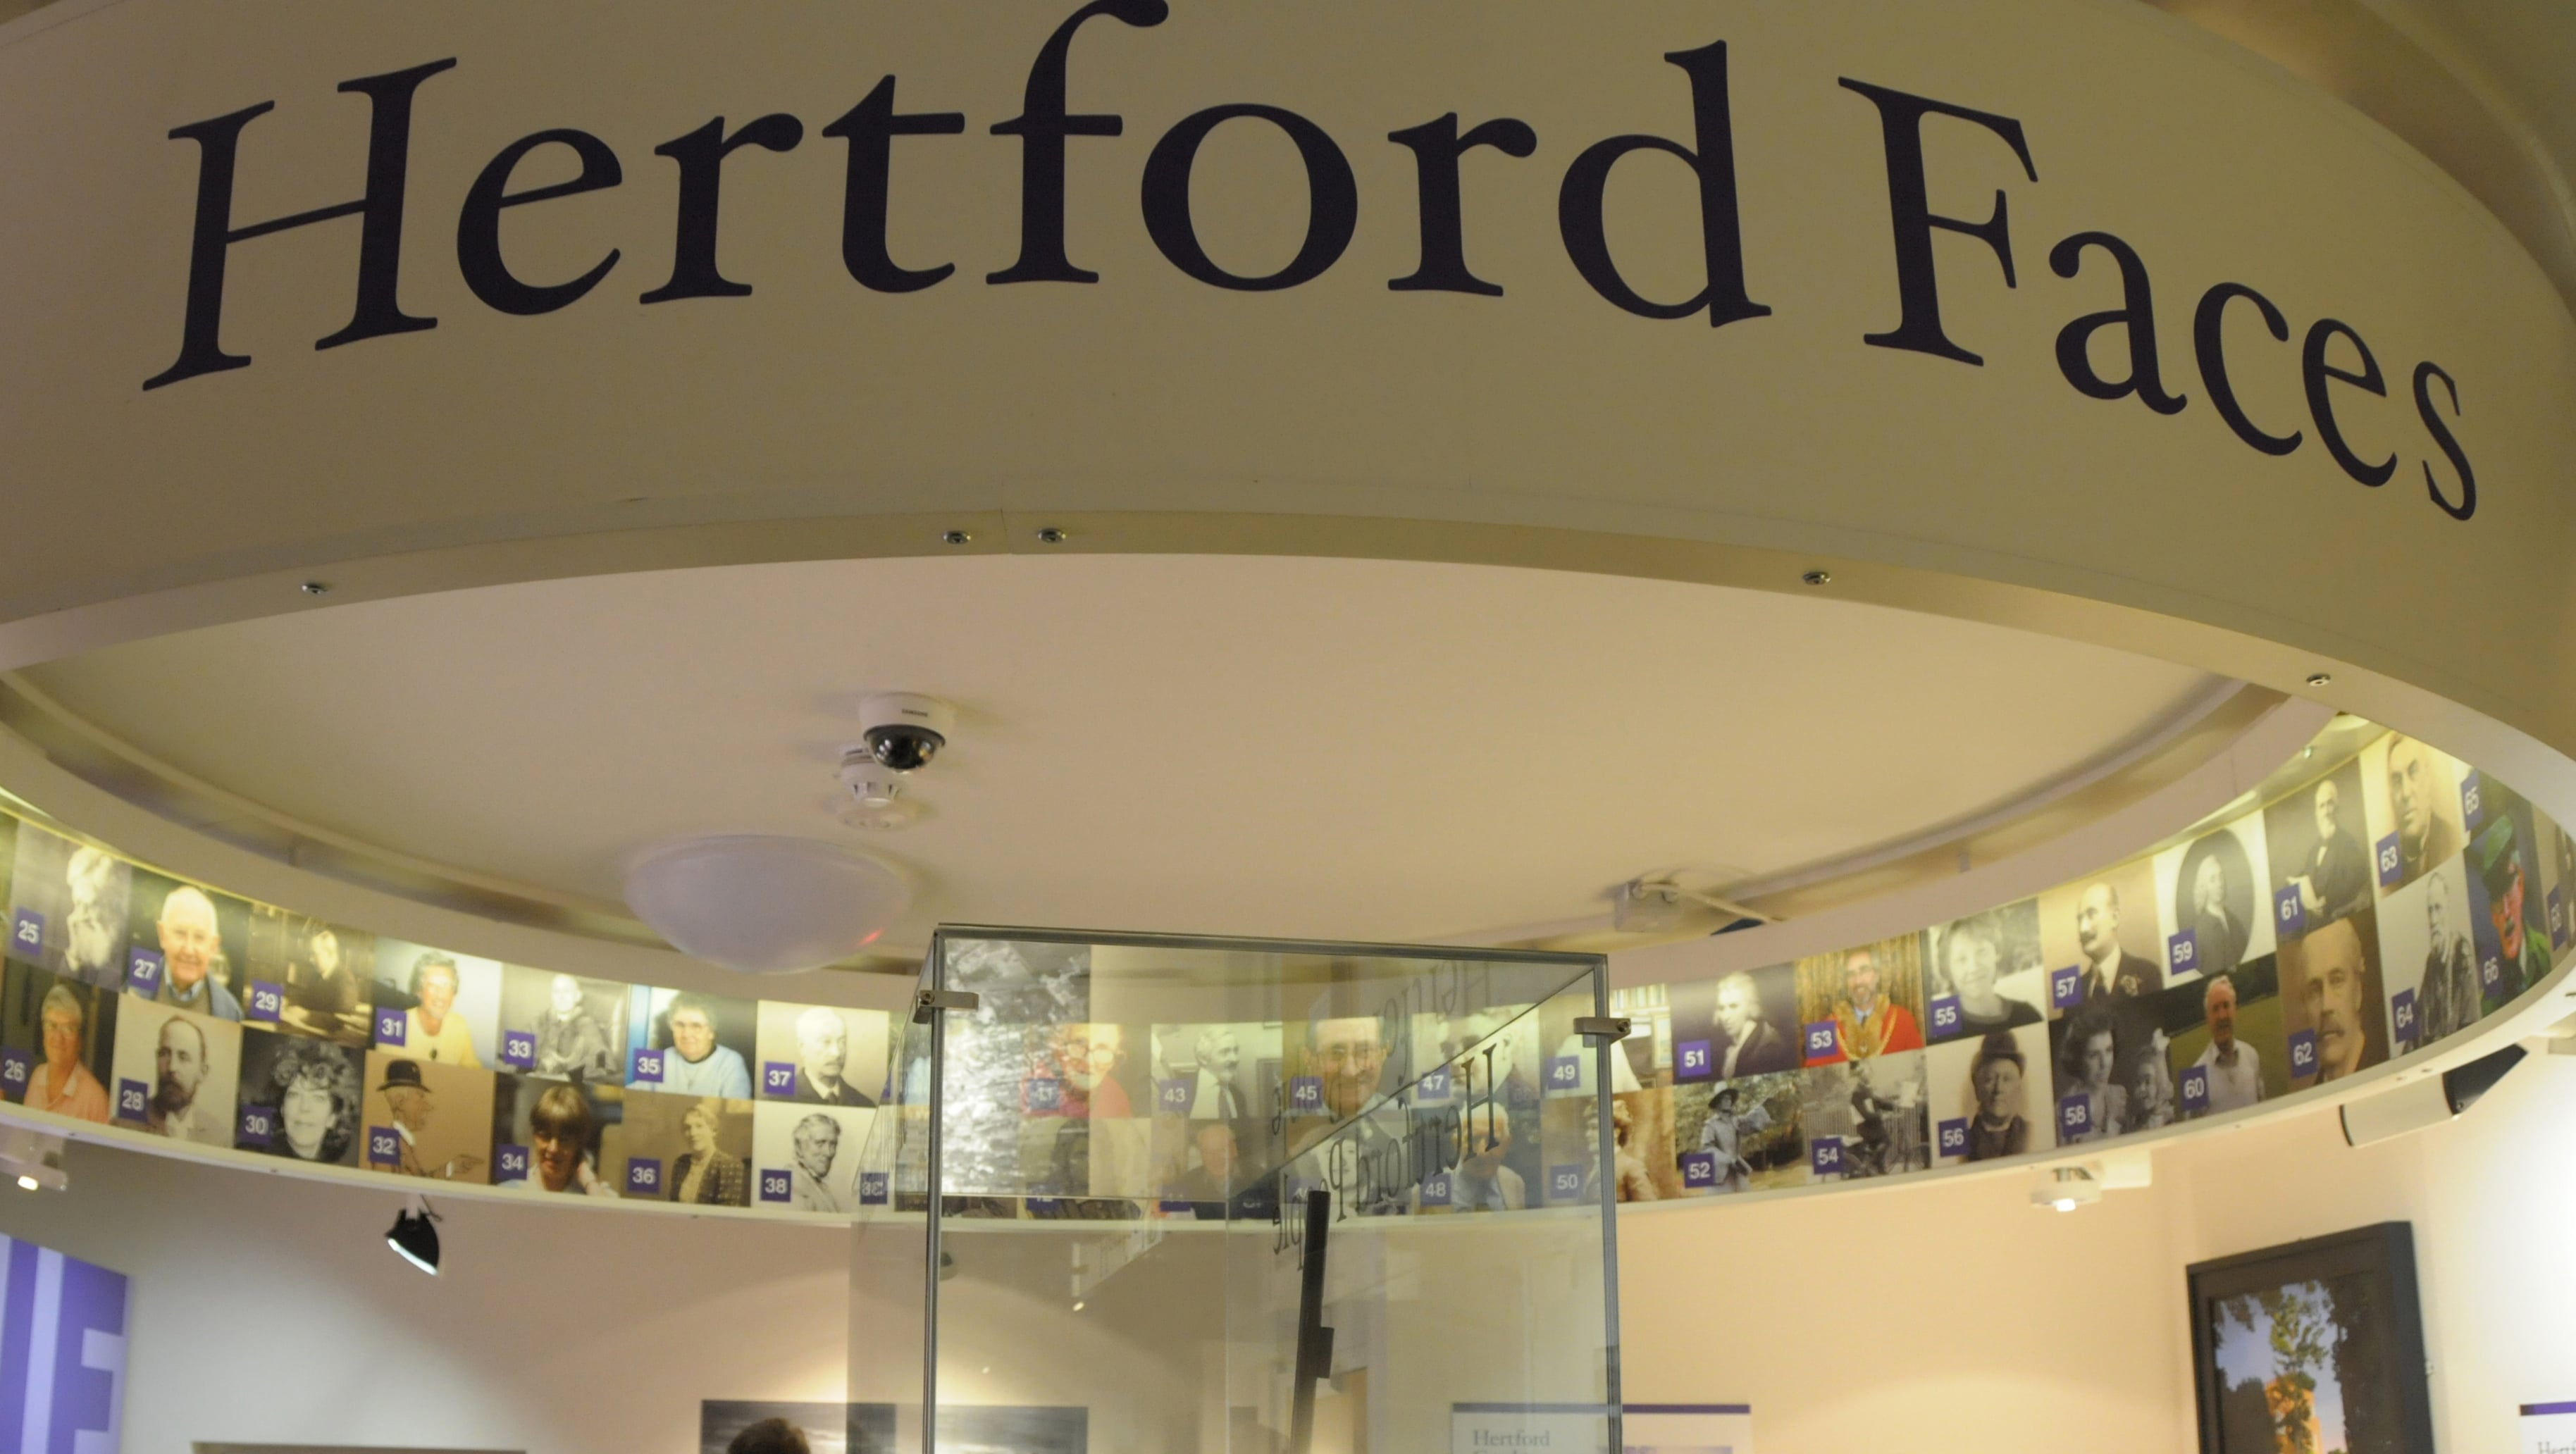 The 'Hertford Faces' exhibition